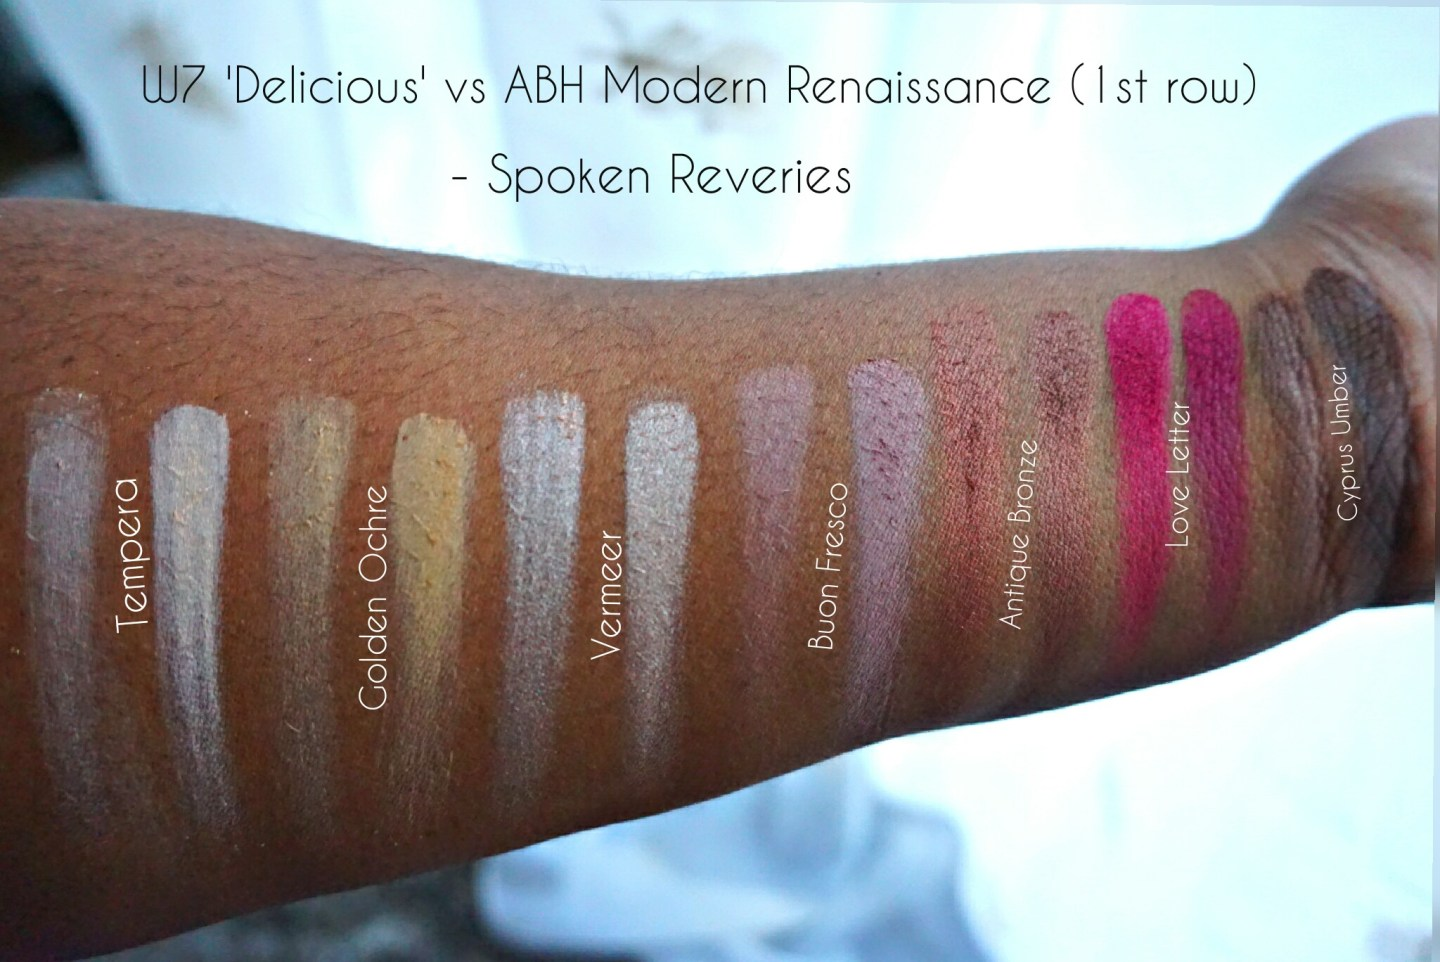 Row 1 swatches - W7 (L) and ABH (R)